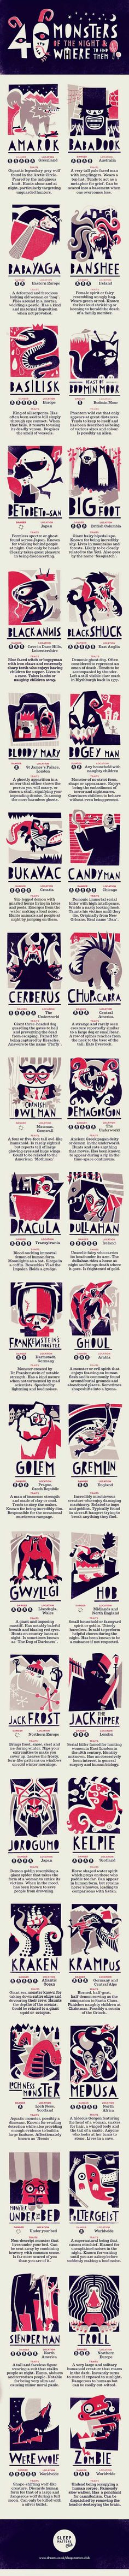 Monster Guide: A to Z (31 Days of Halloween 08/31) - Imgur